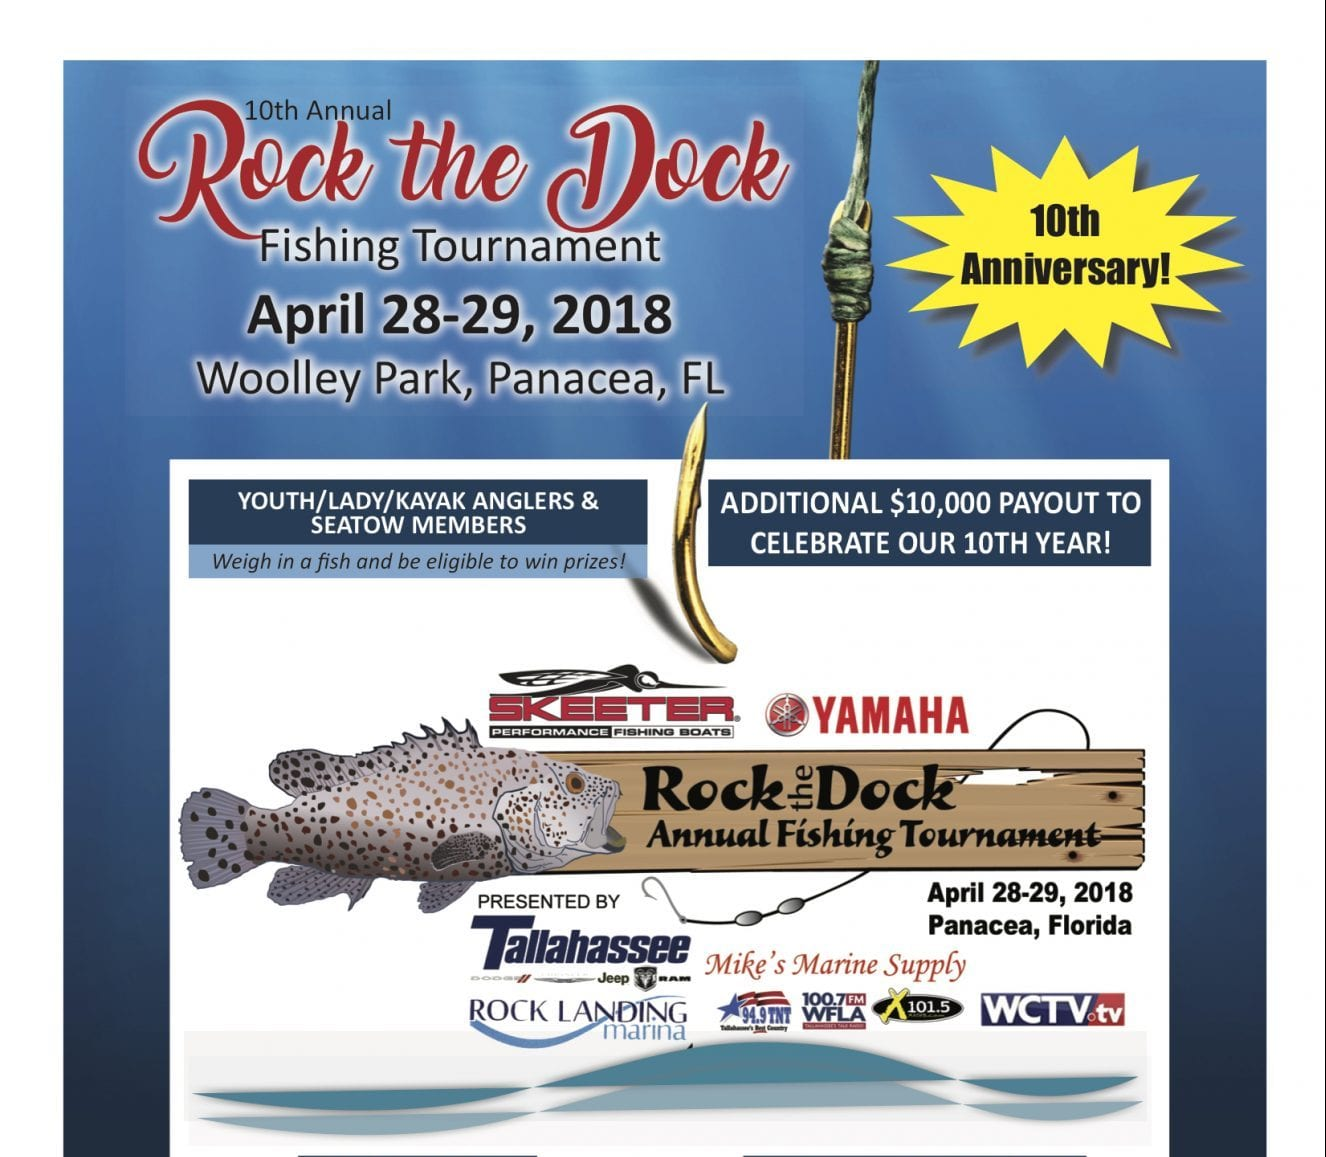 10th Annual Rock The Dock Fishing Tournament